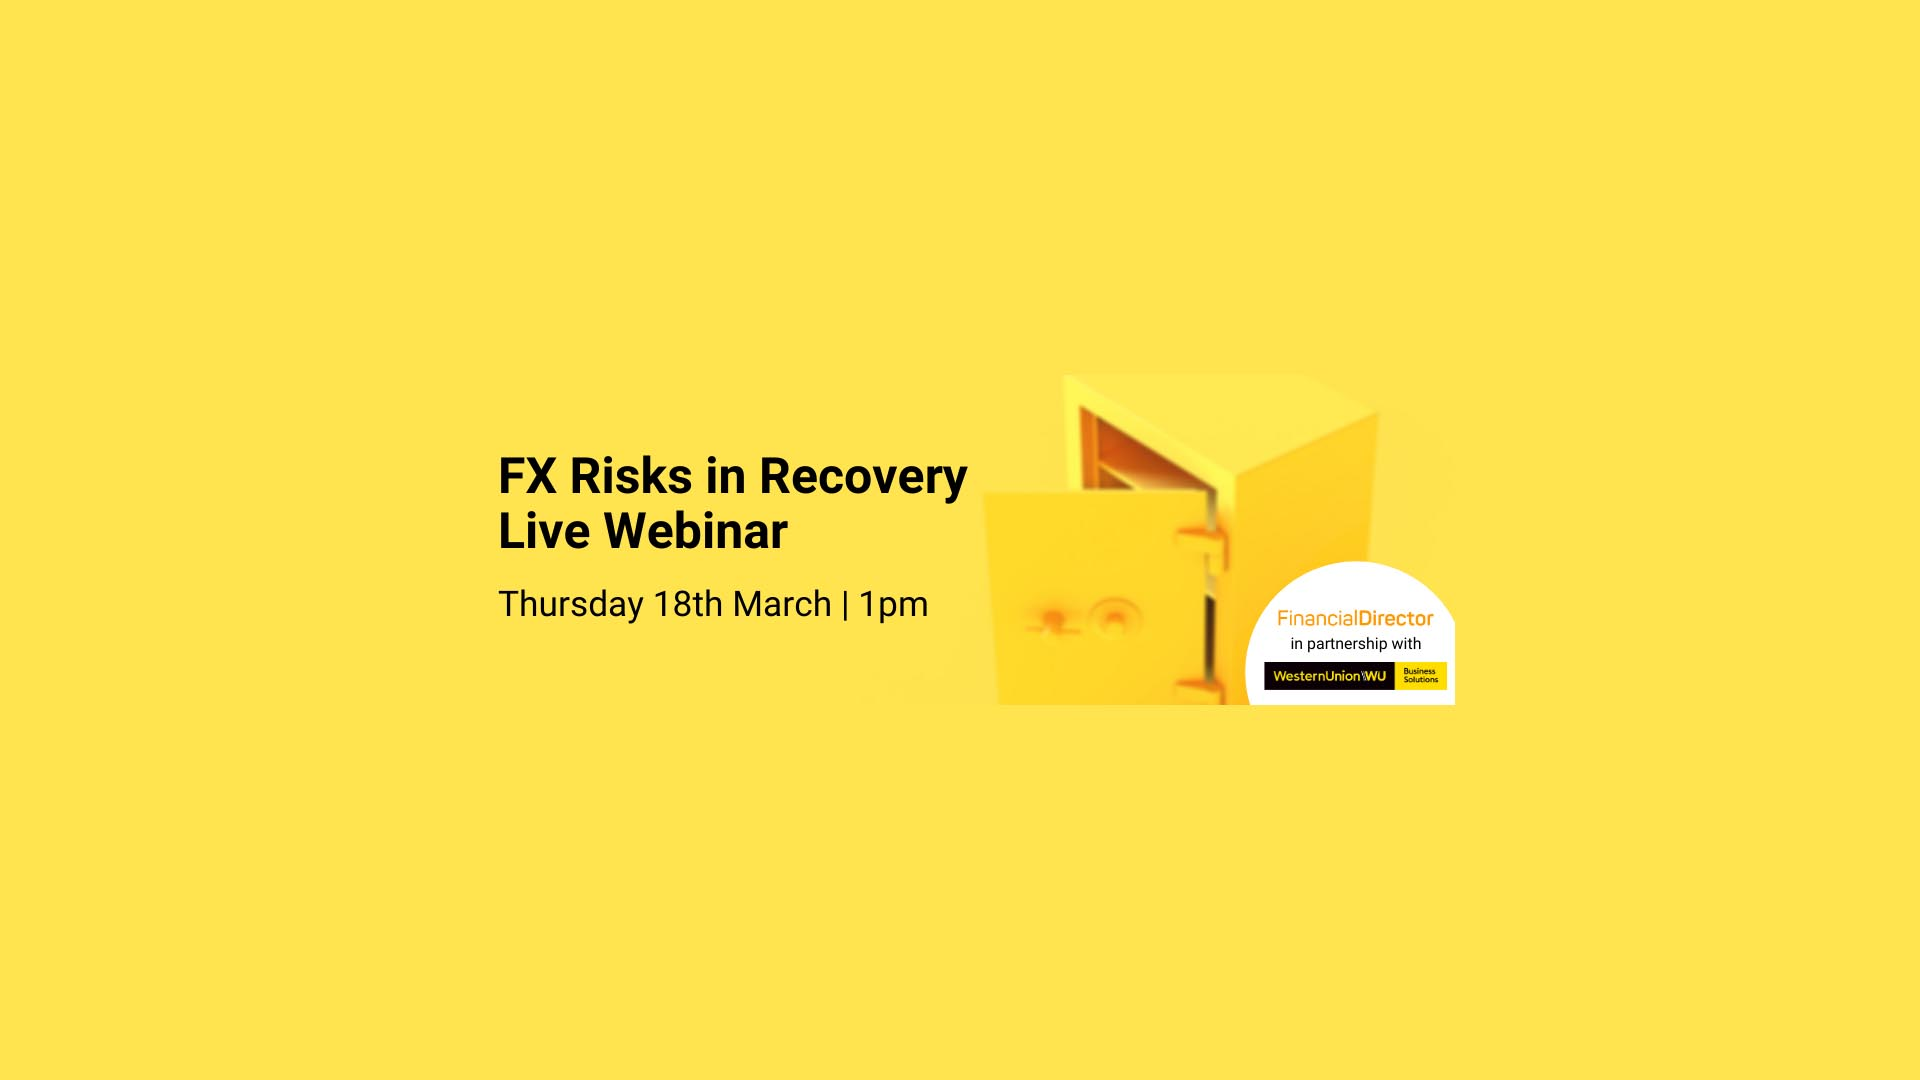 FX Risks in Recovery Webinar – Thur 18th March